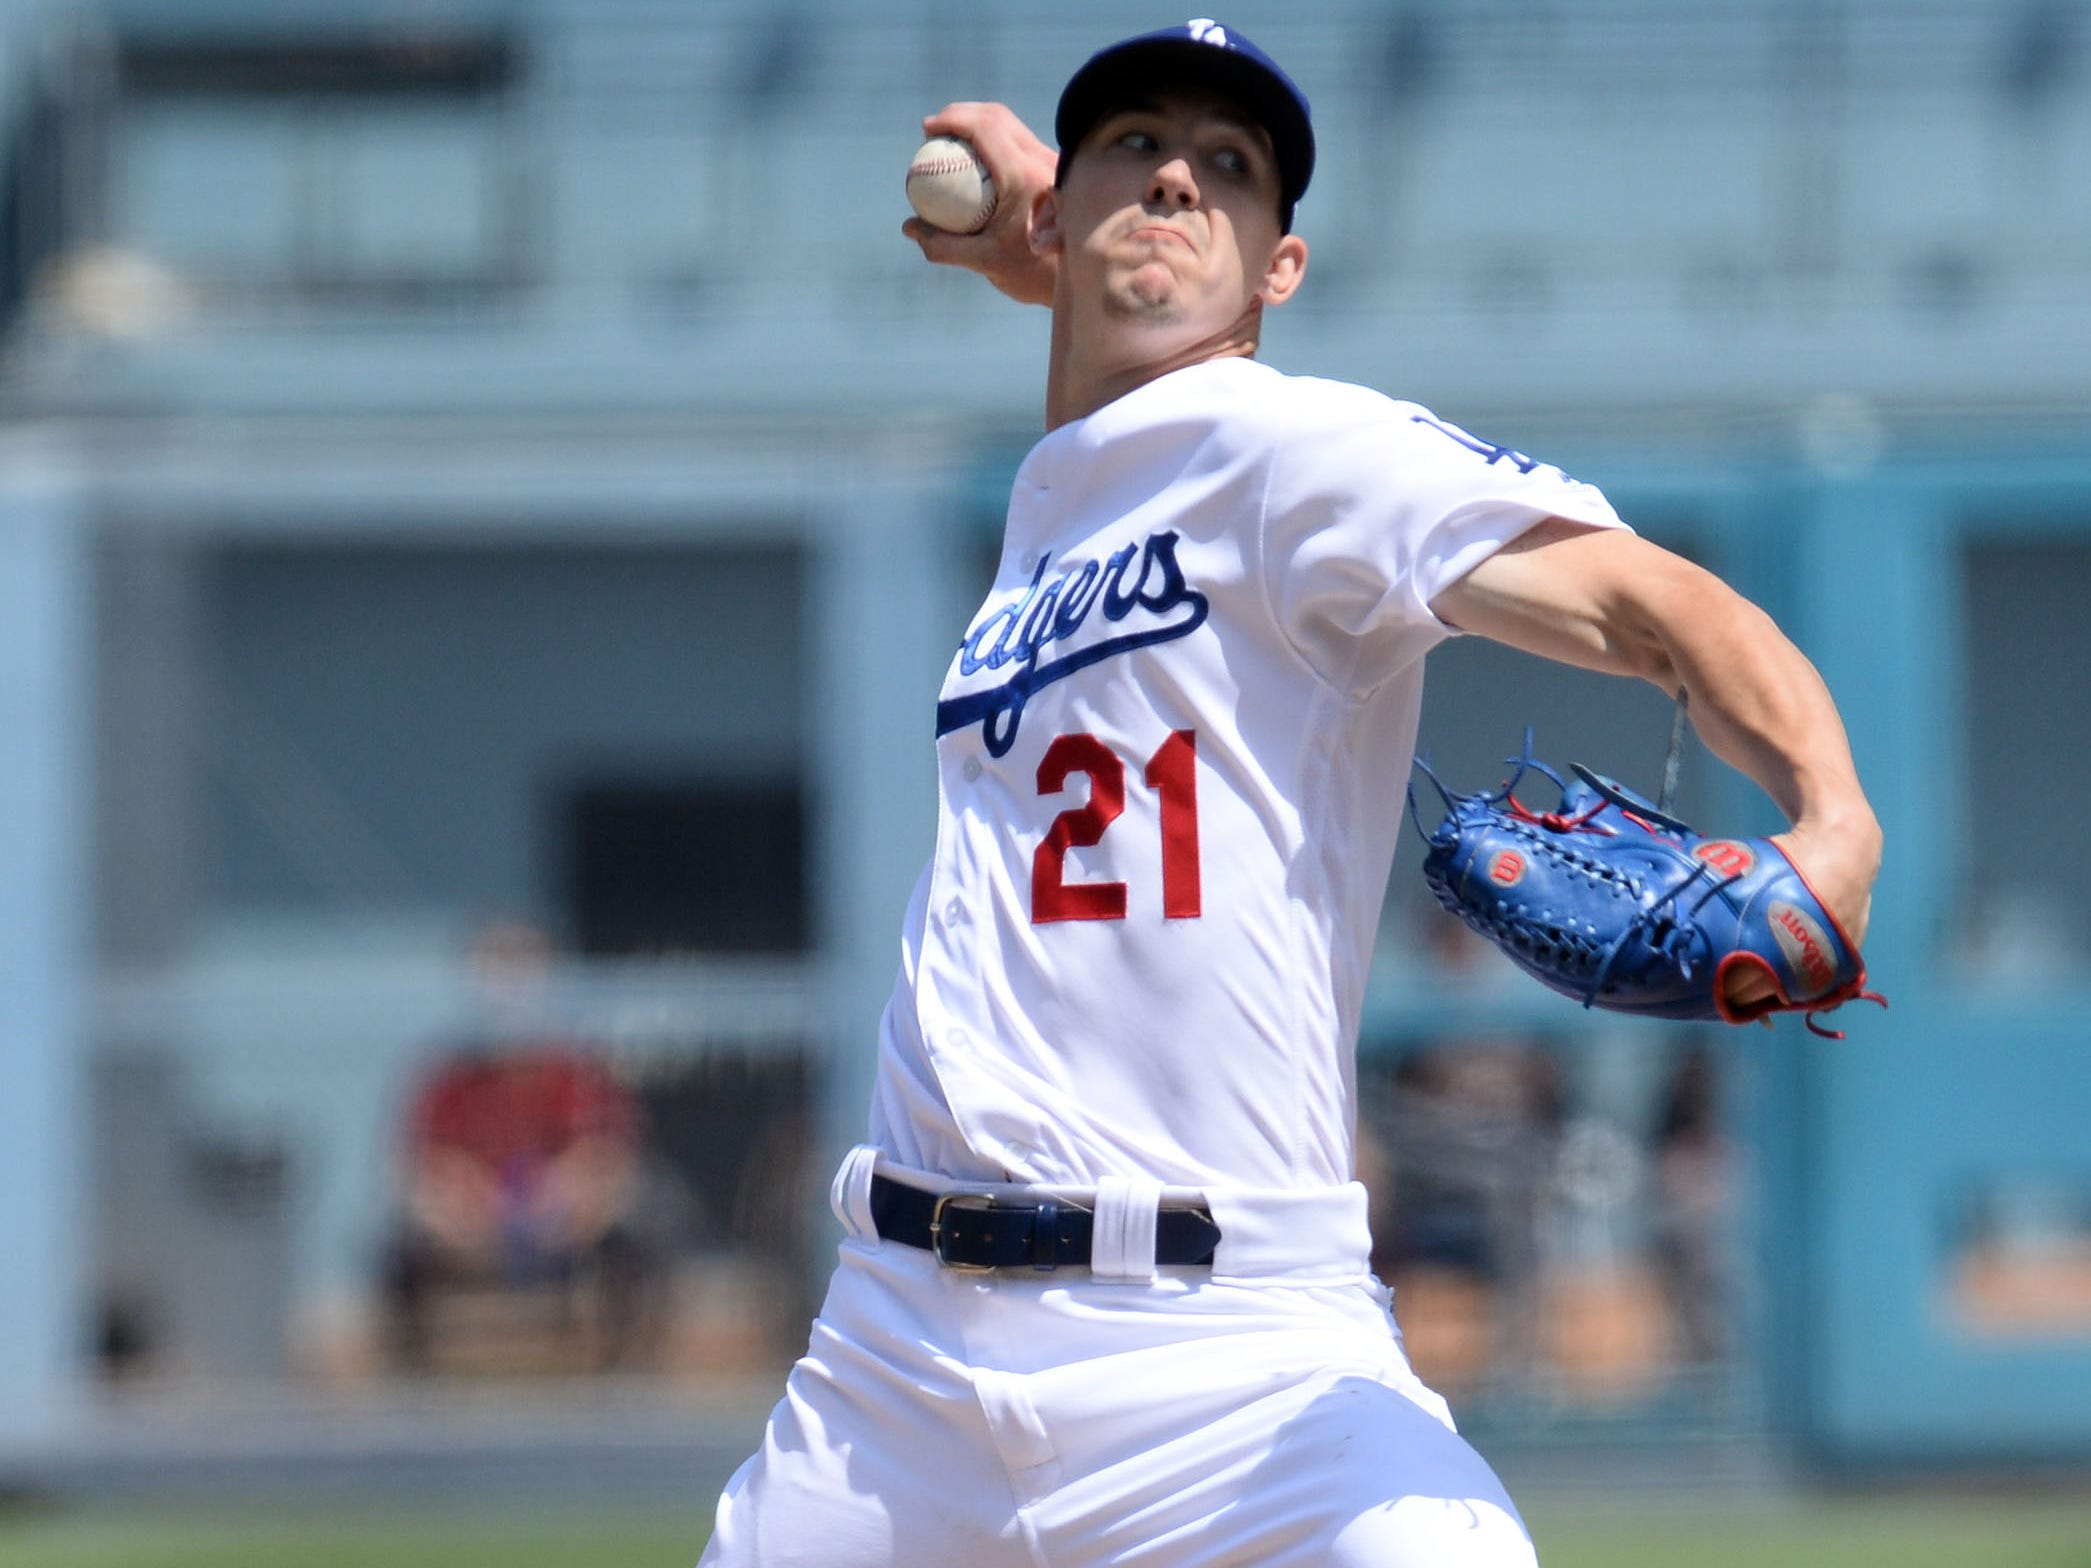 September 2, 2018; Los Angeles, CA, USA; Los Angeles Dodgers starting pitcher Walker Buehler (21) throws against the Arizona Diamondbacks in the second inning at Dodger Stadium. Mandatory Credit: Gary A. Vasquez-USA TODAY Sports